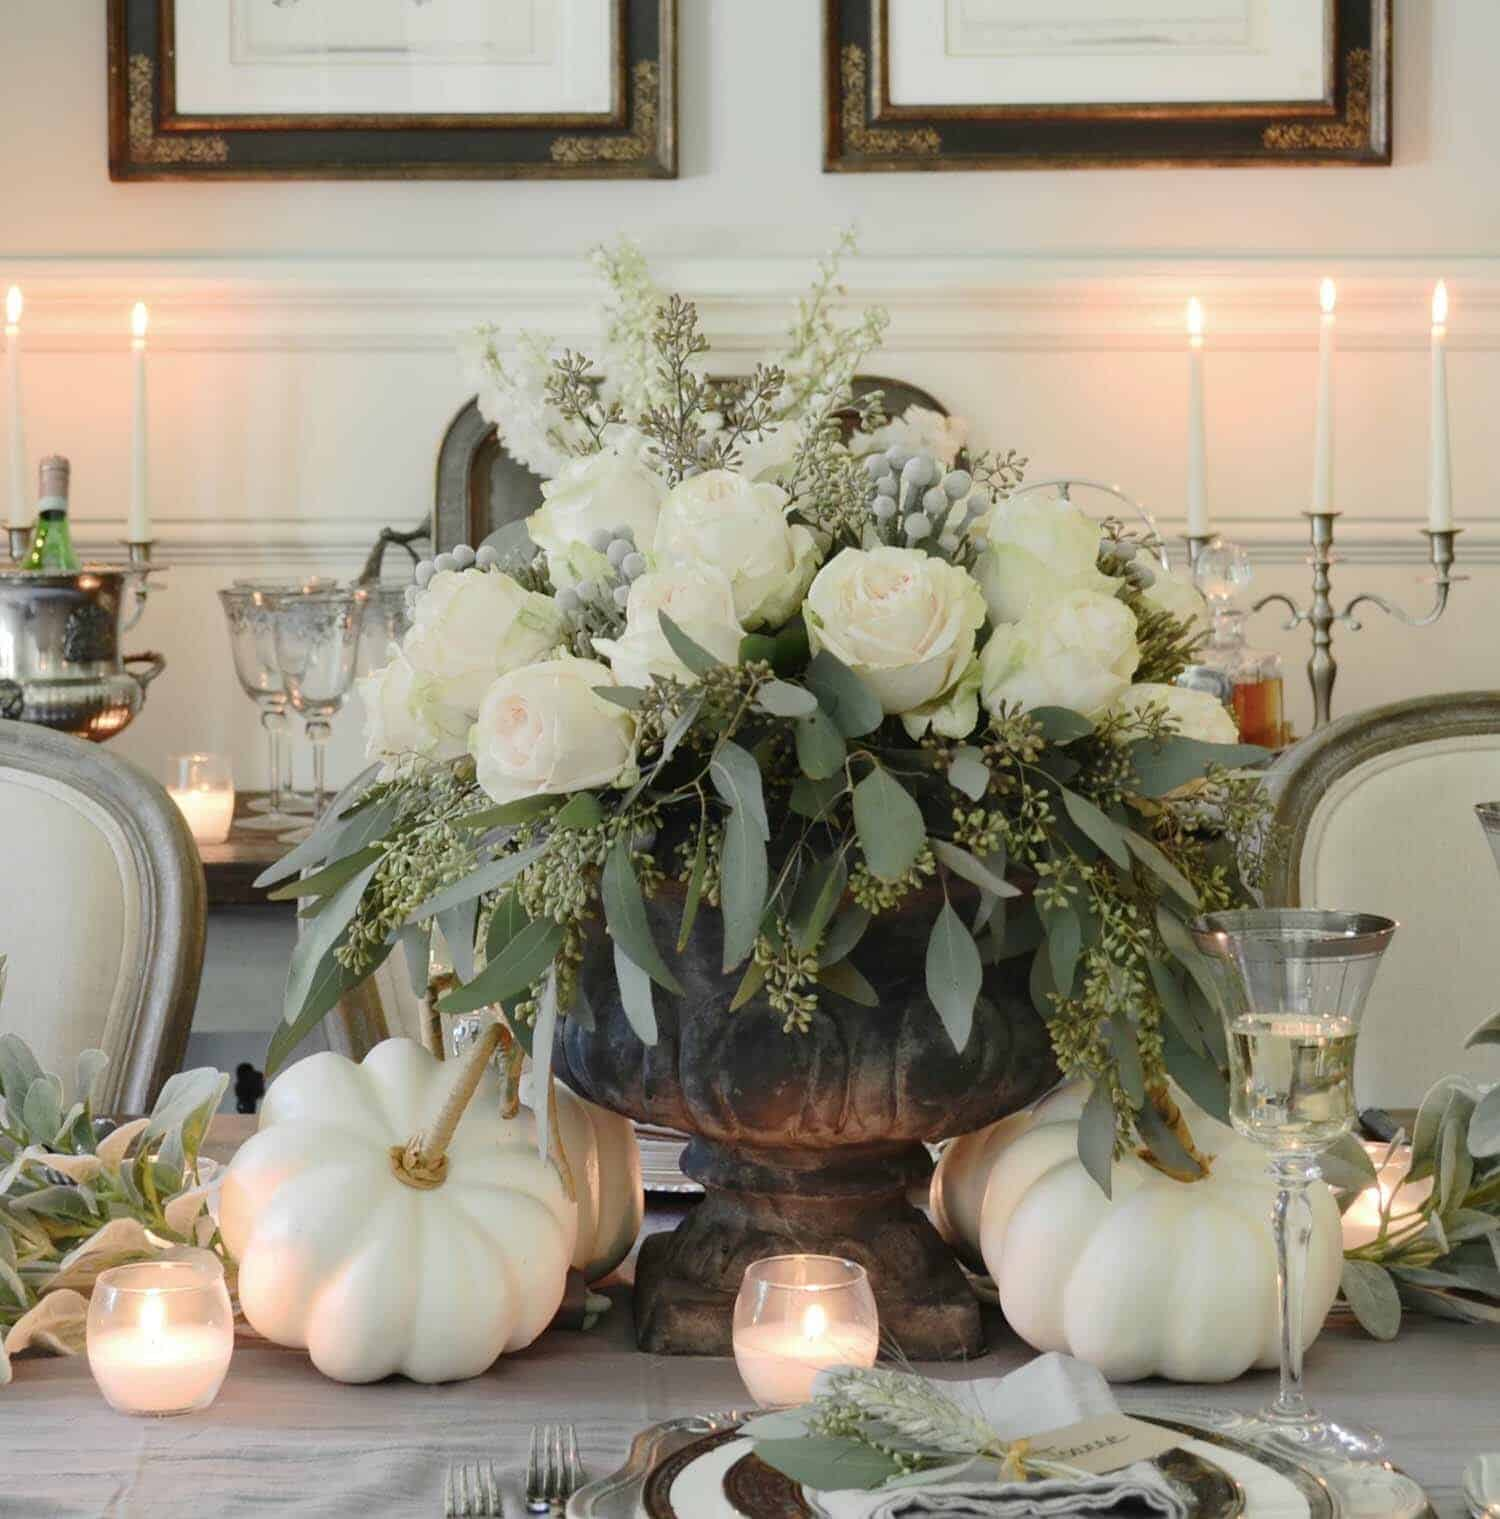 Thanksgiving Table Arrangements: 25+ Beautiful And Elegant Centerpiece Ideas For A